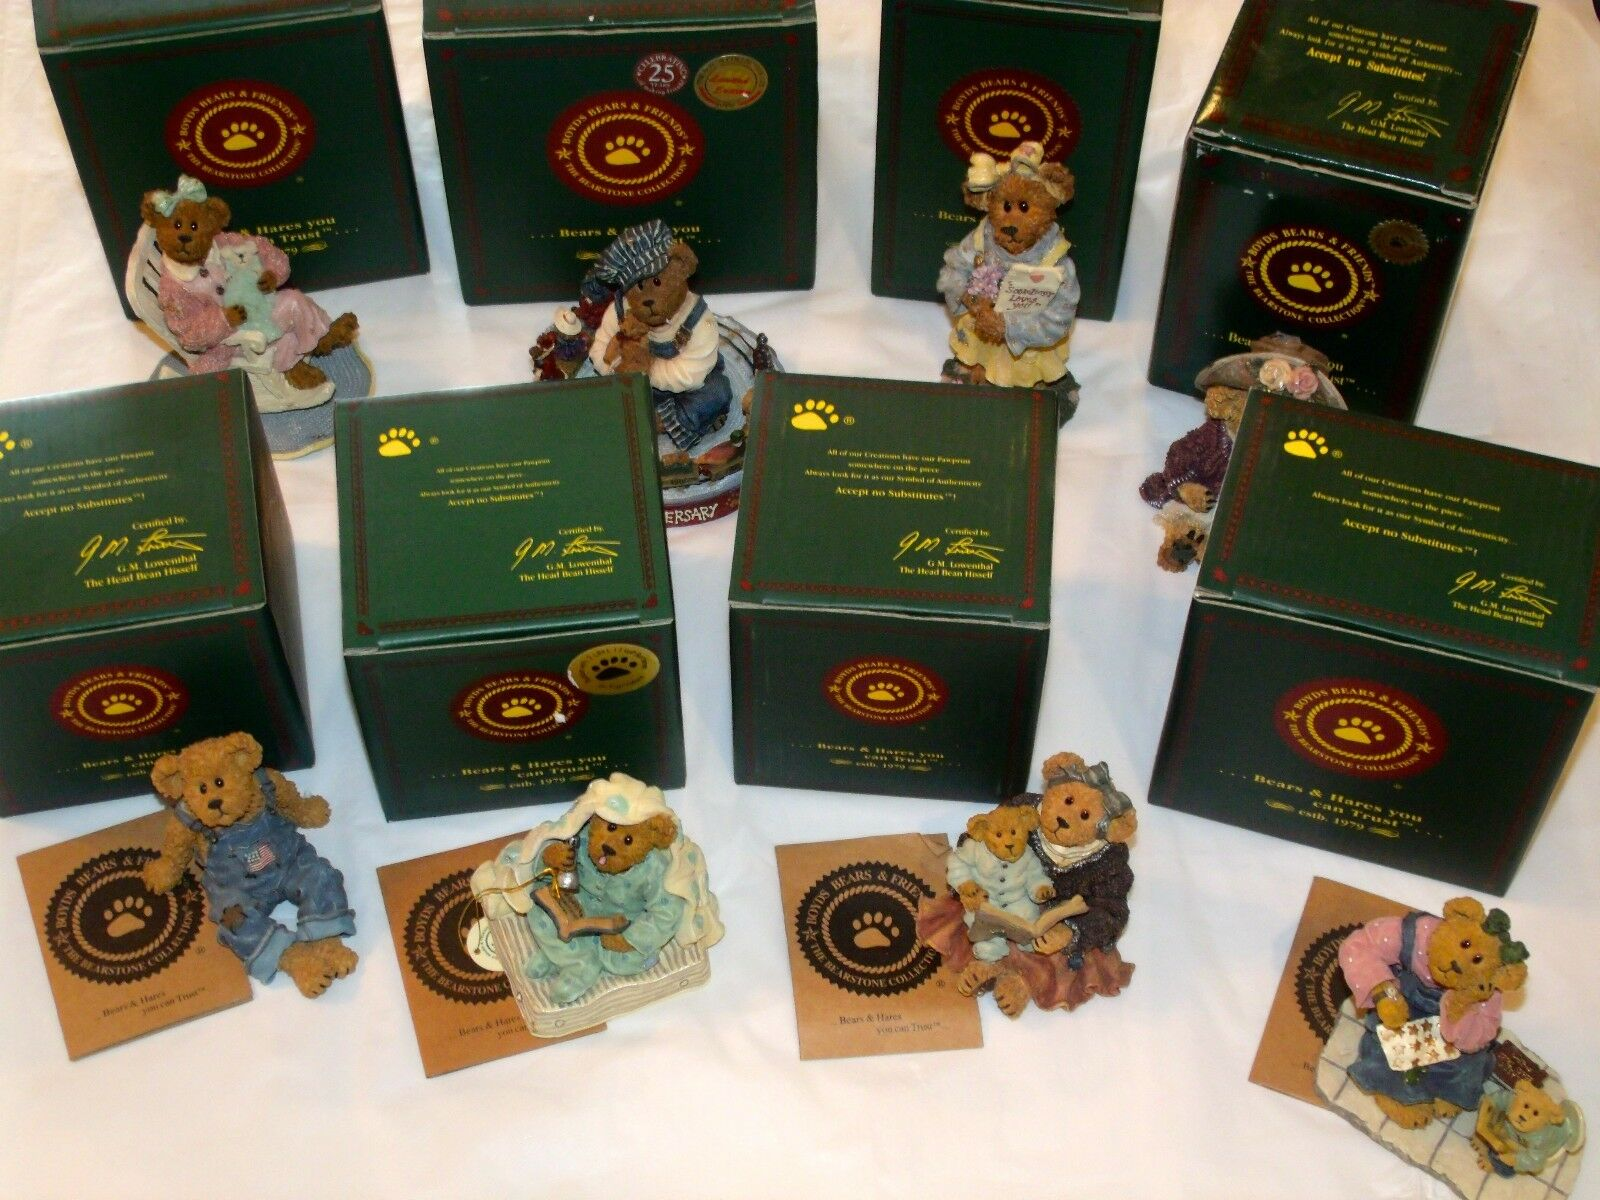 Lot Of 8 Boyds Bears Bearstone Collection Figurines All New In Boxes - Nice Lot